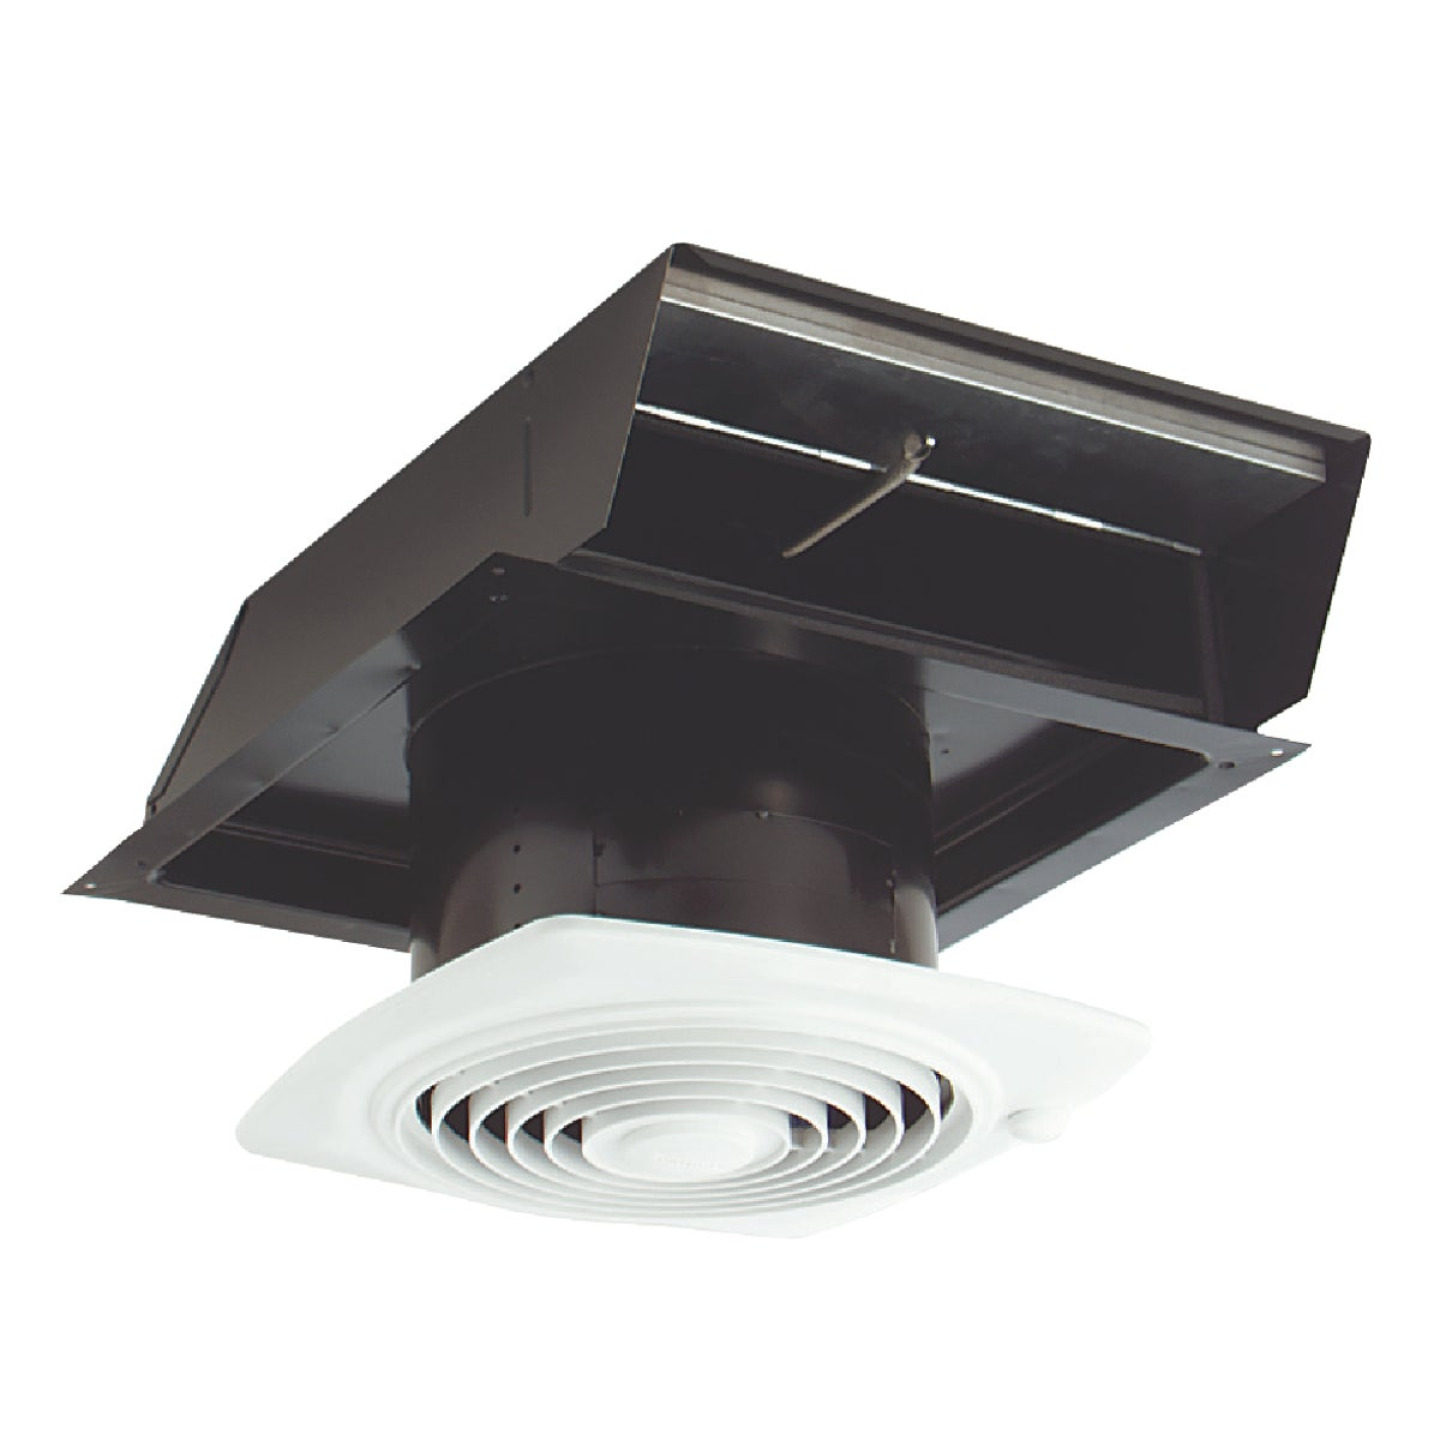 Broan 180 CFM 6.5 Sones 120V Bath Exhaust Fan Image 1